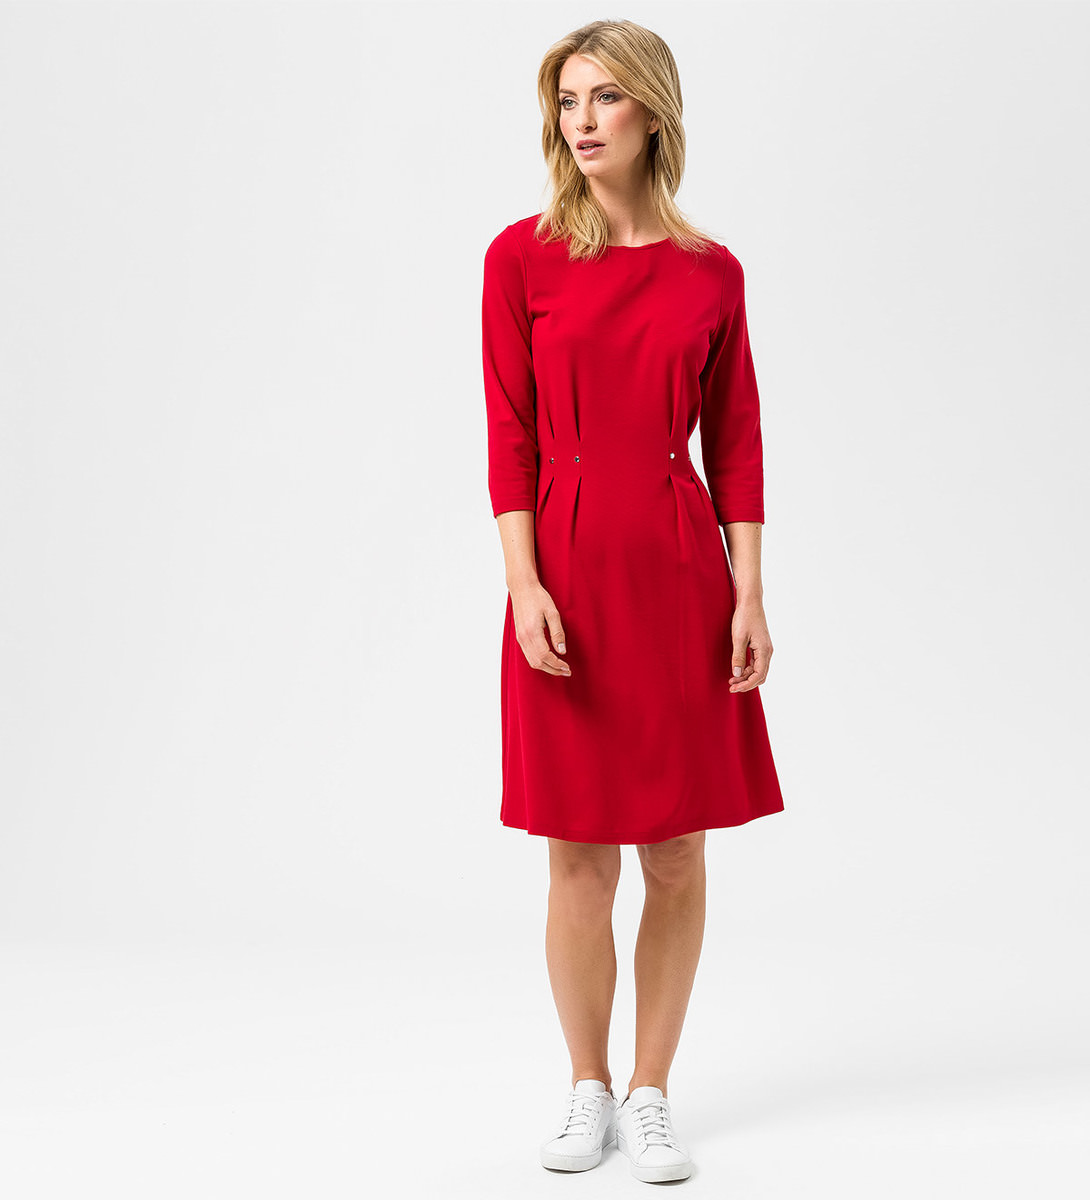 Kleid mit Nietendetail in chili red